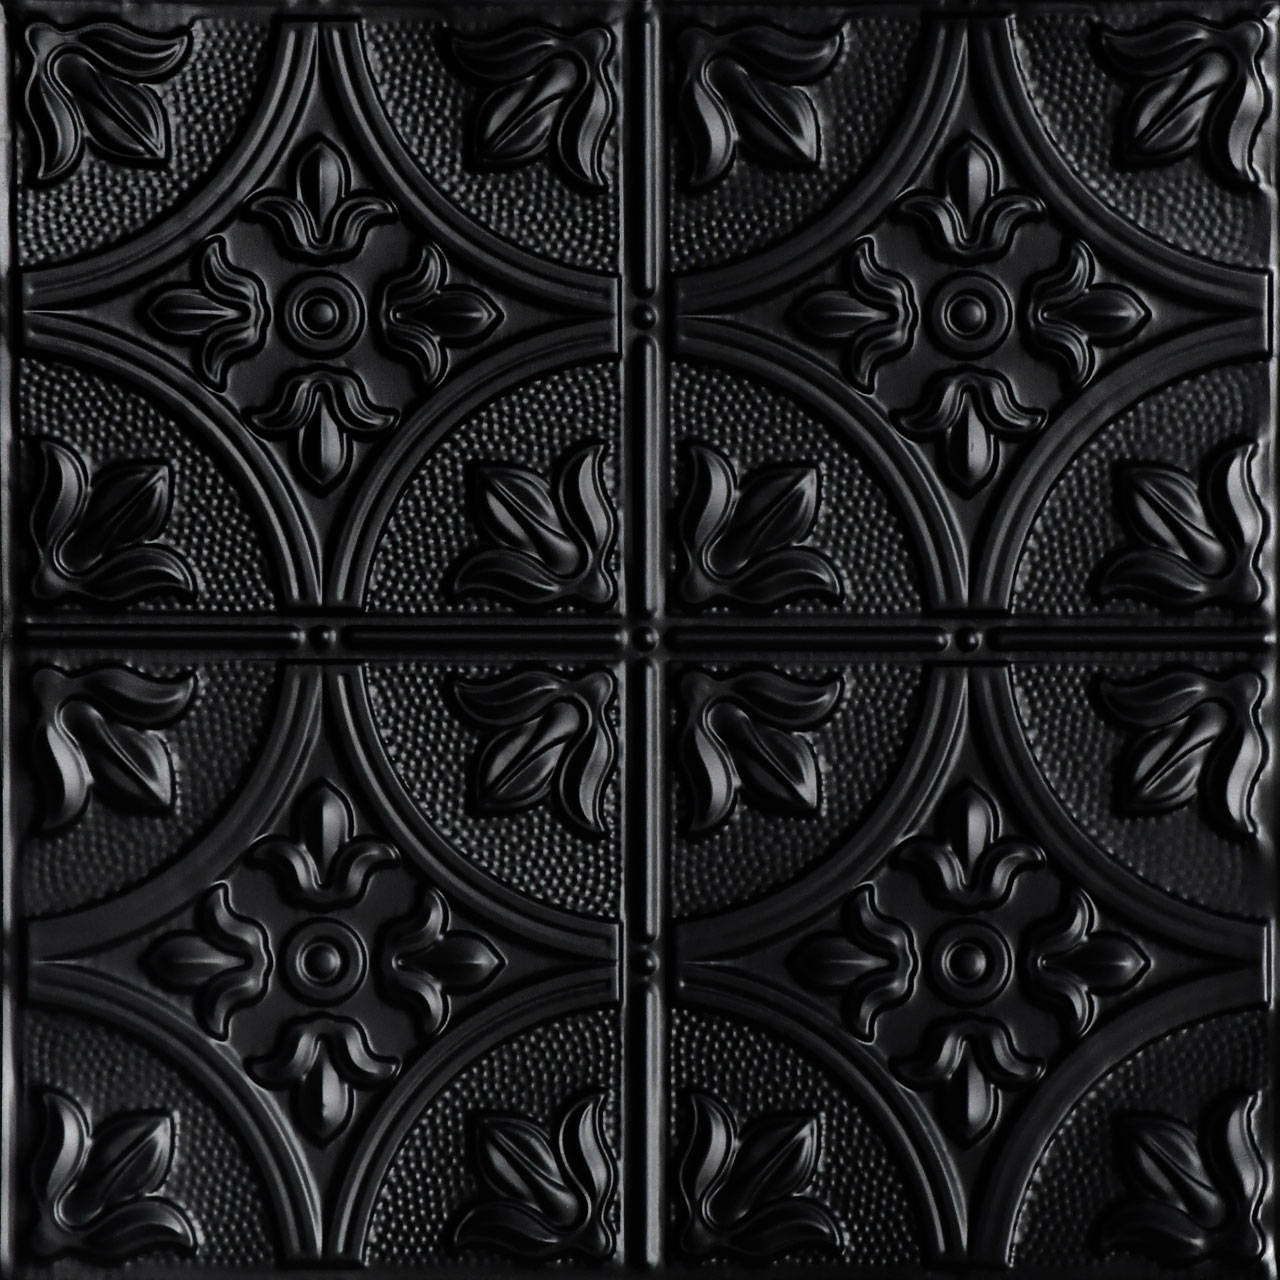 Tiptoe 2 ft x 2 ft Shanko - Wall and Ceiling Patterns - #309 - (Pack of 12) - Black